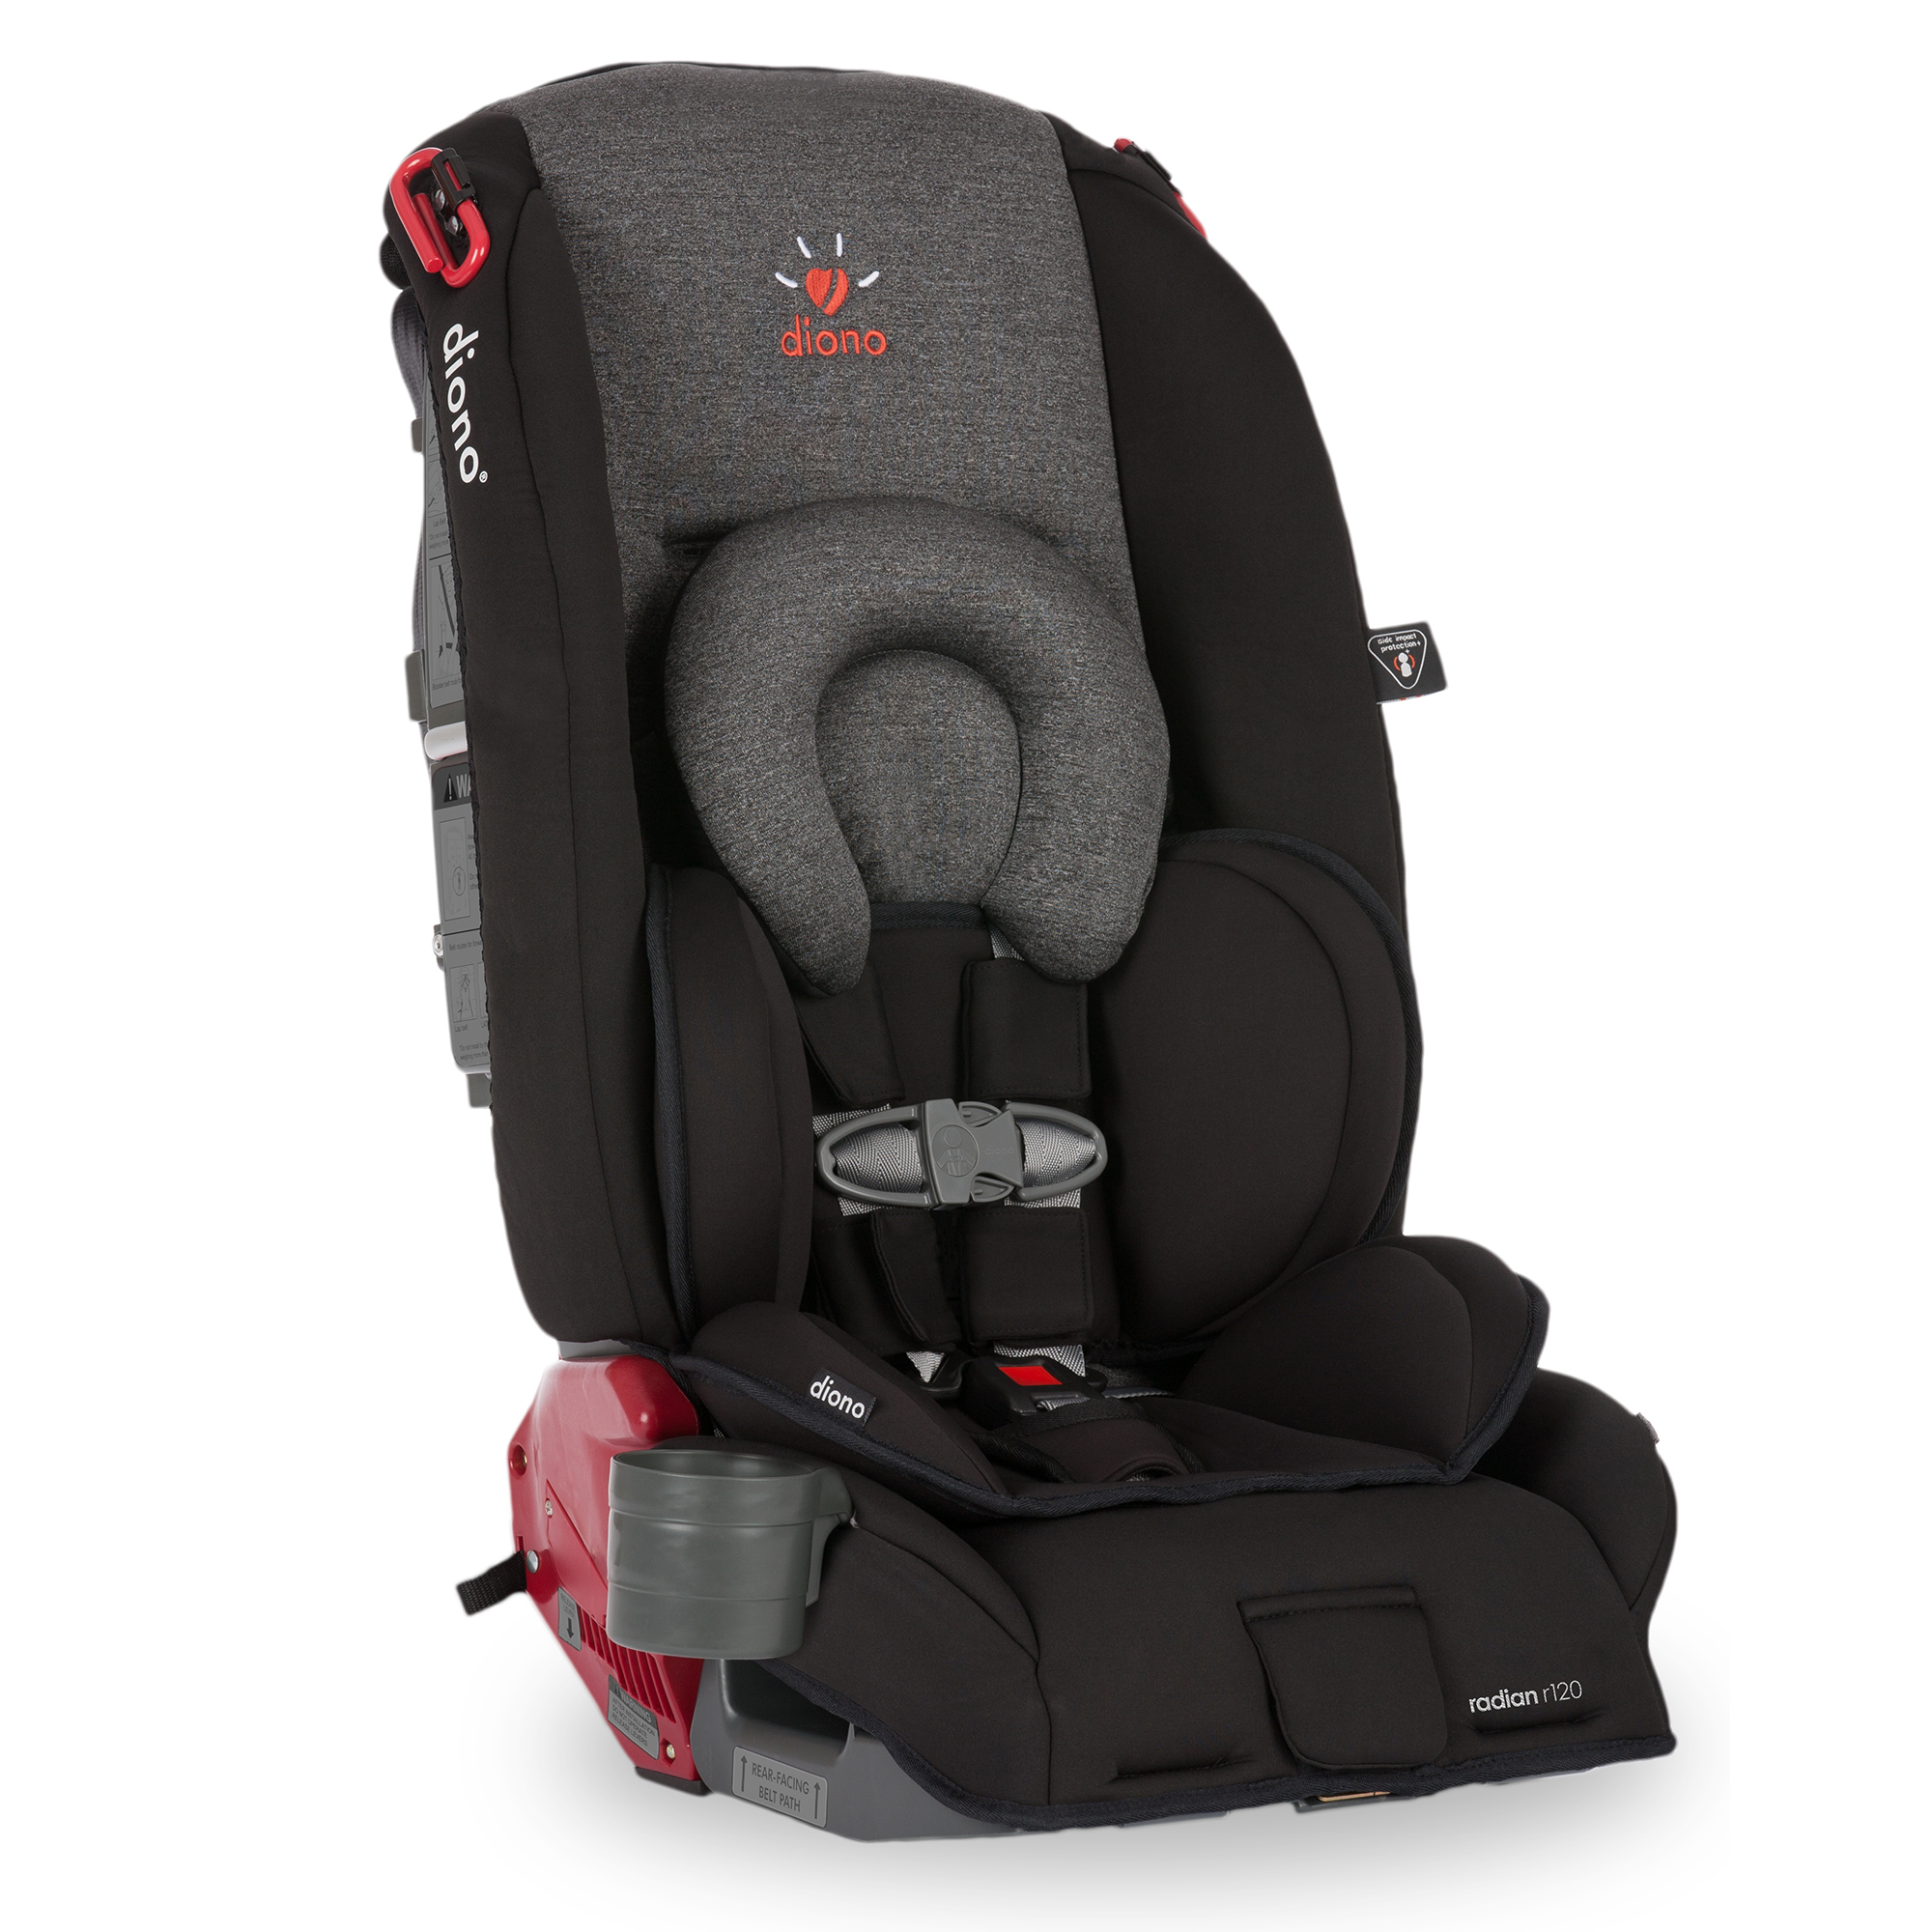 Diono Radian R120 All-in-One Car Seat, Essex by Diono